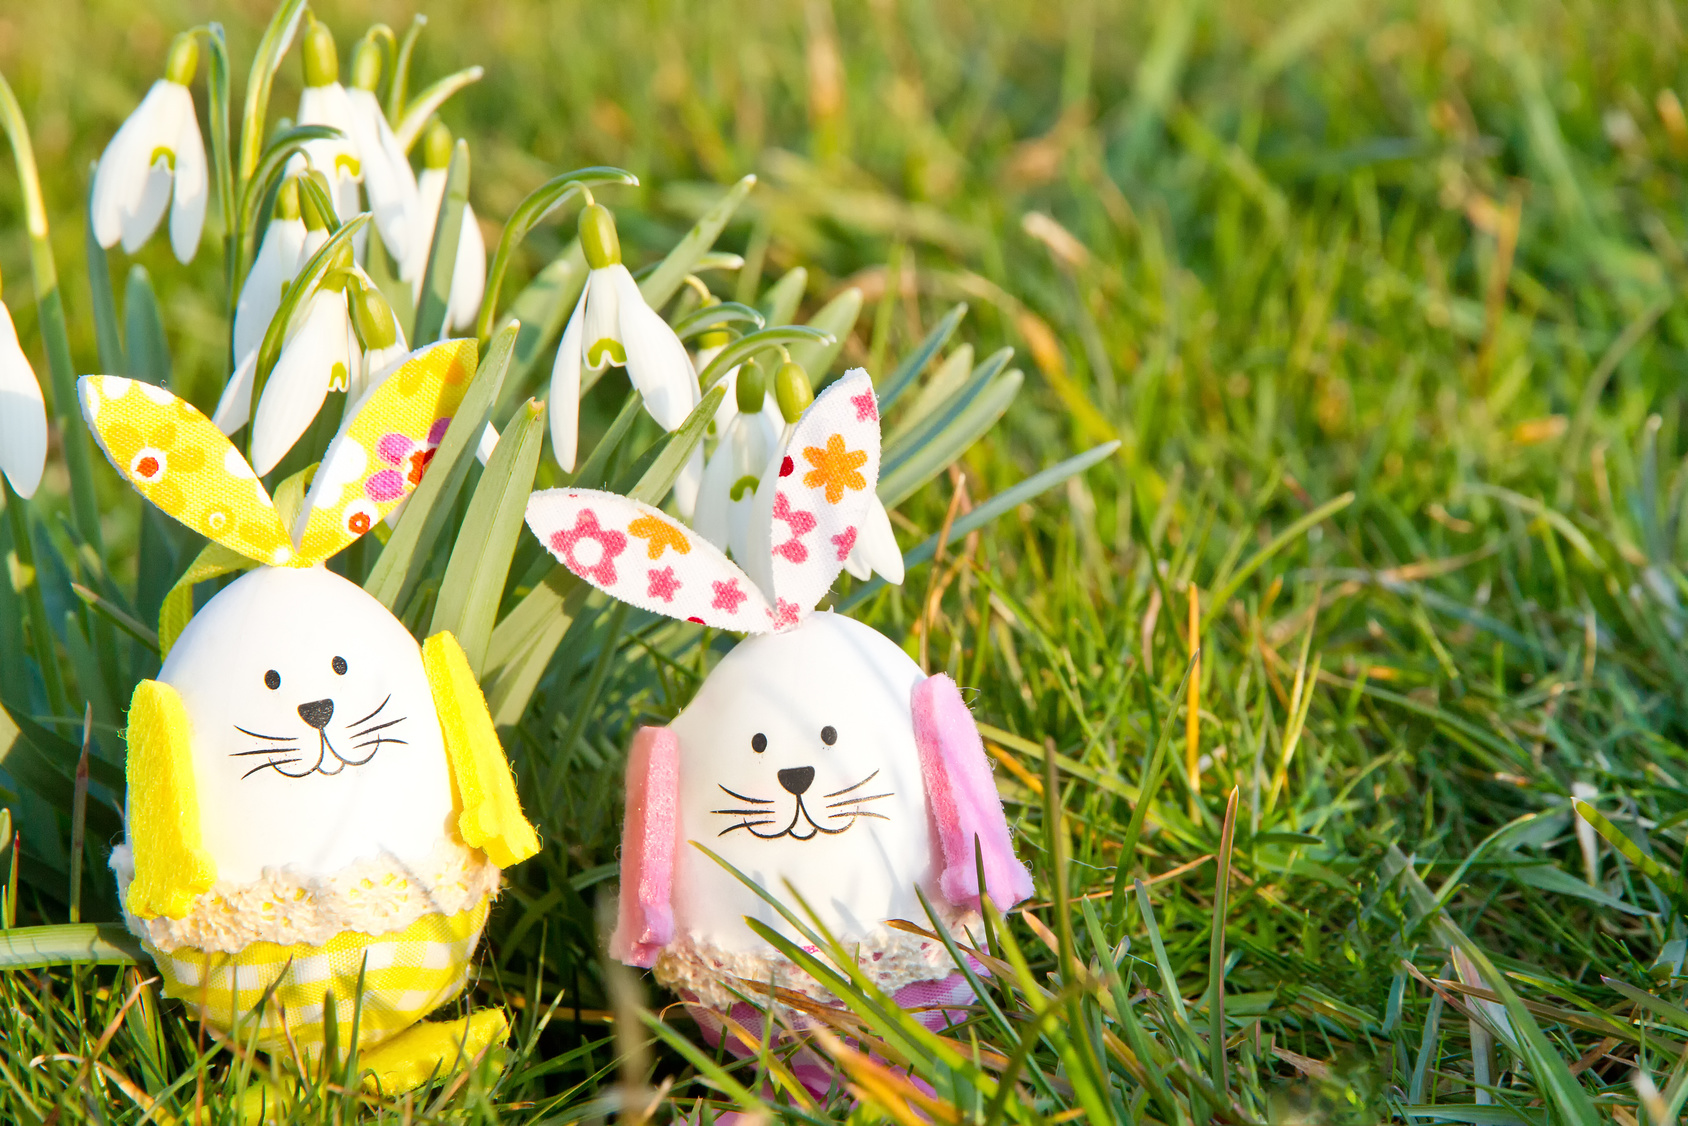 Easy and fuss-free egg decorating ideas for kids that do not use dye